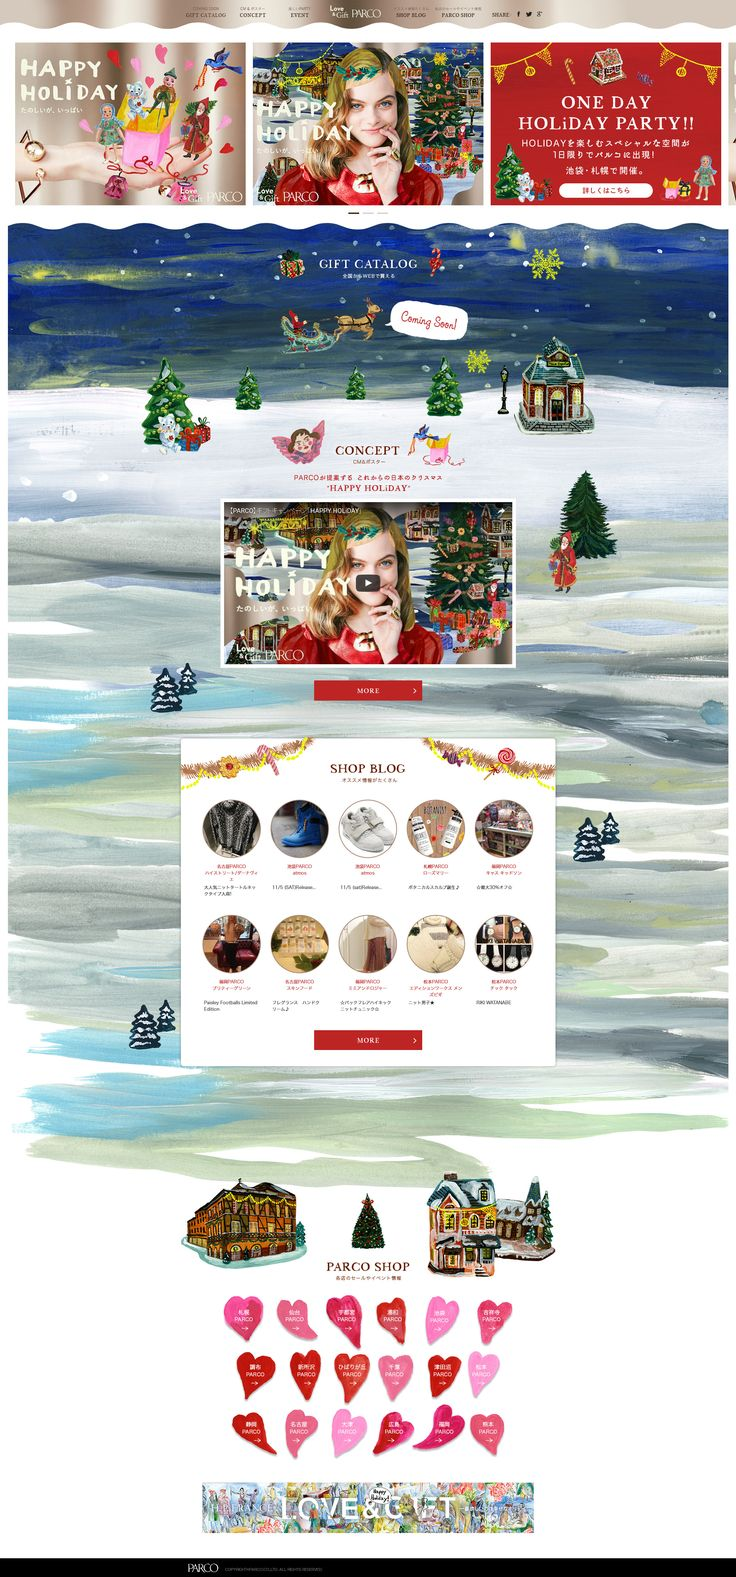 HAPPY HOLIDAY|PARCO http://www.parco.jp/gift/